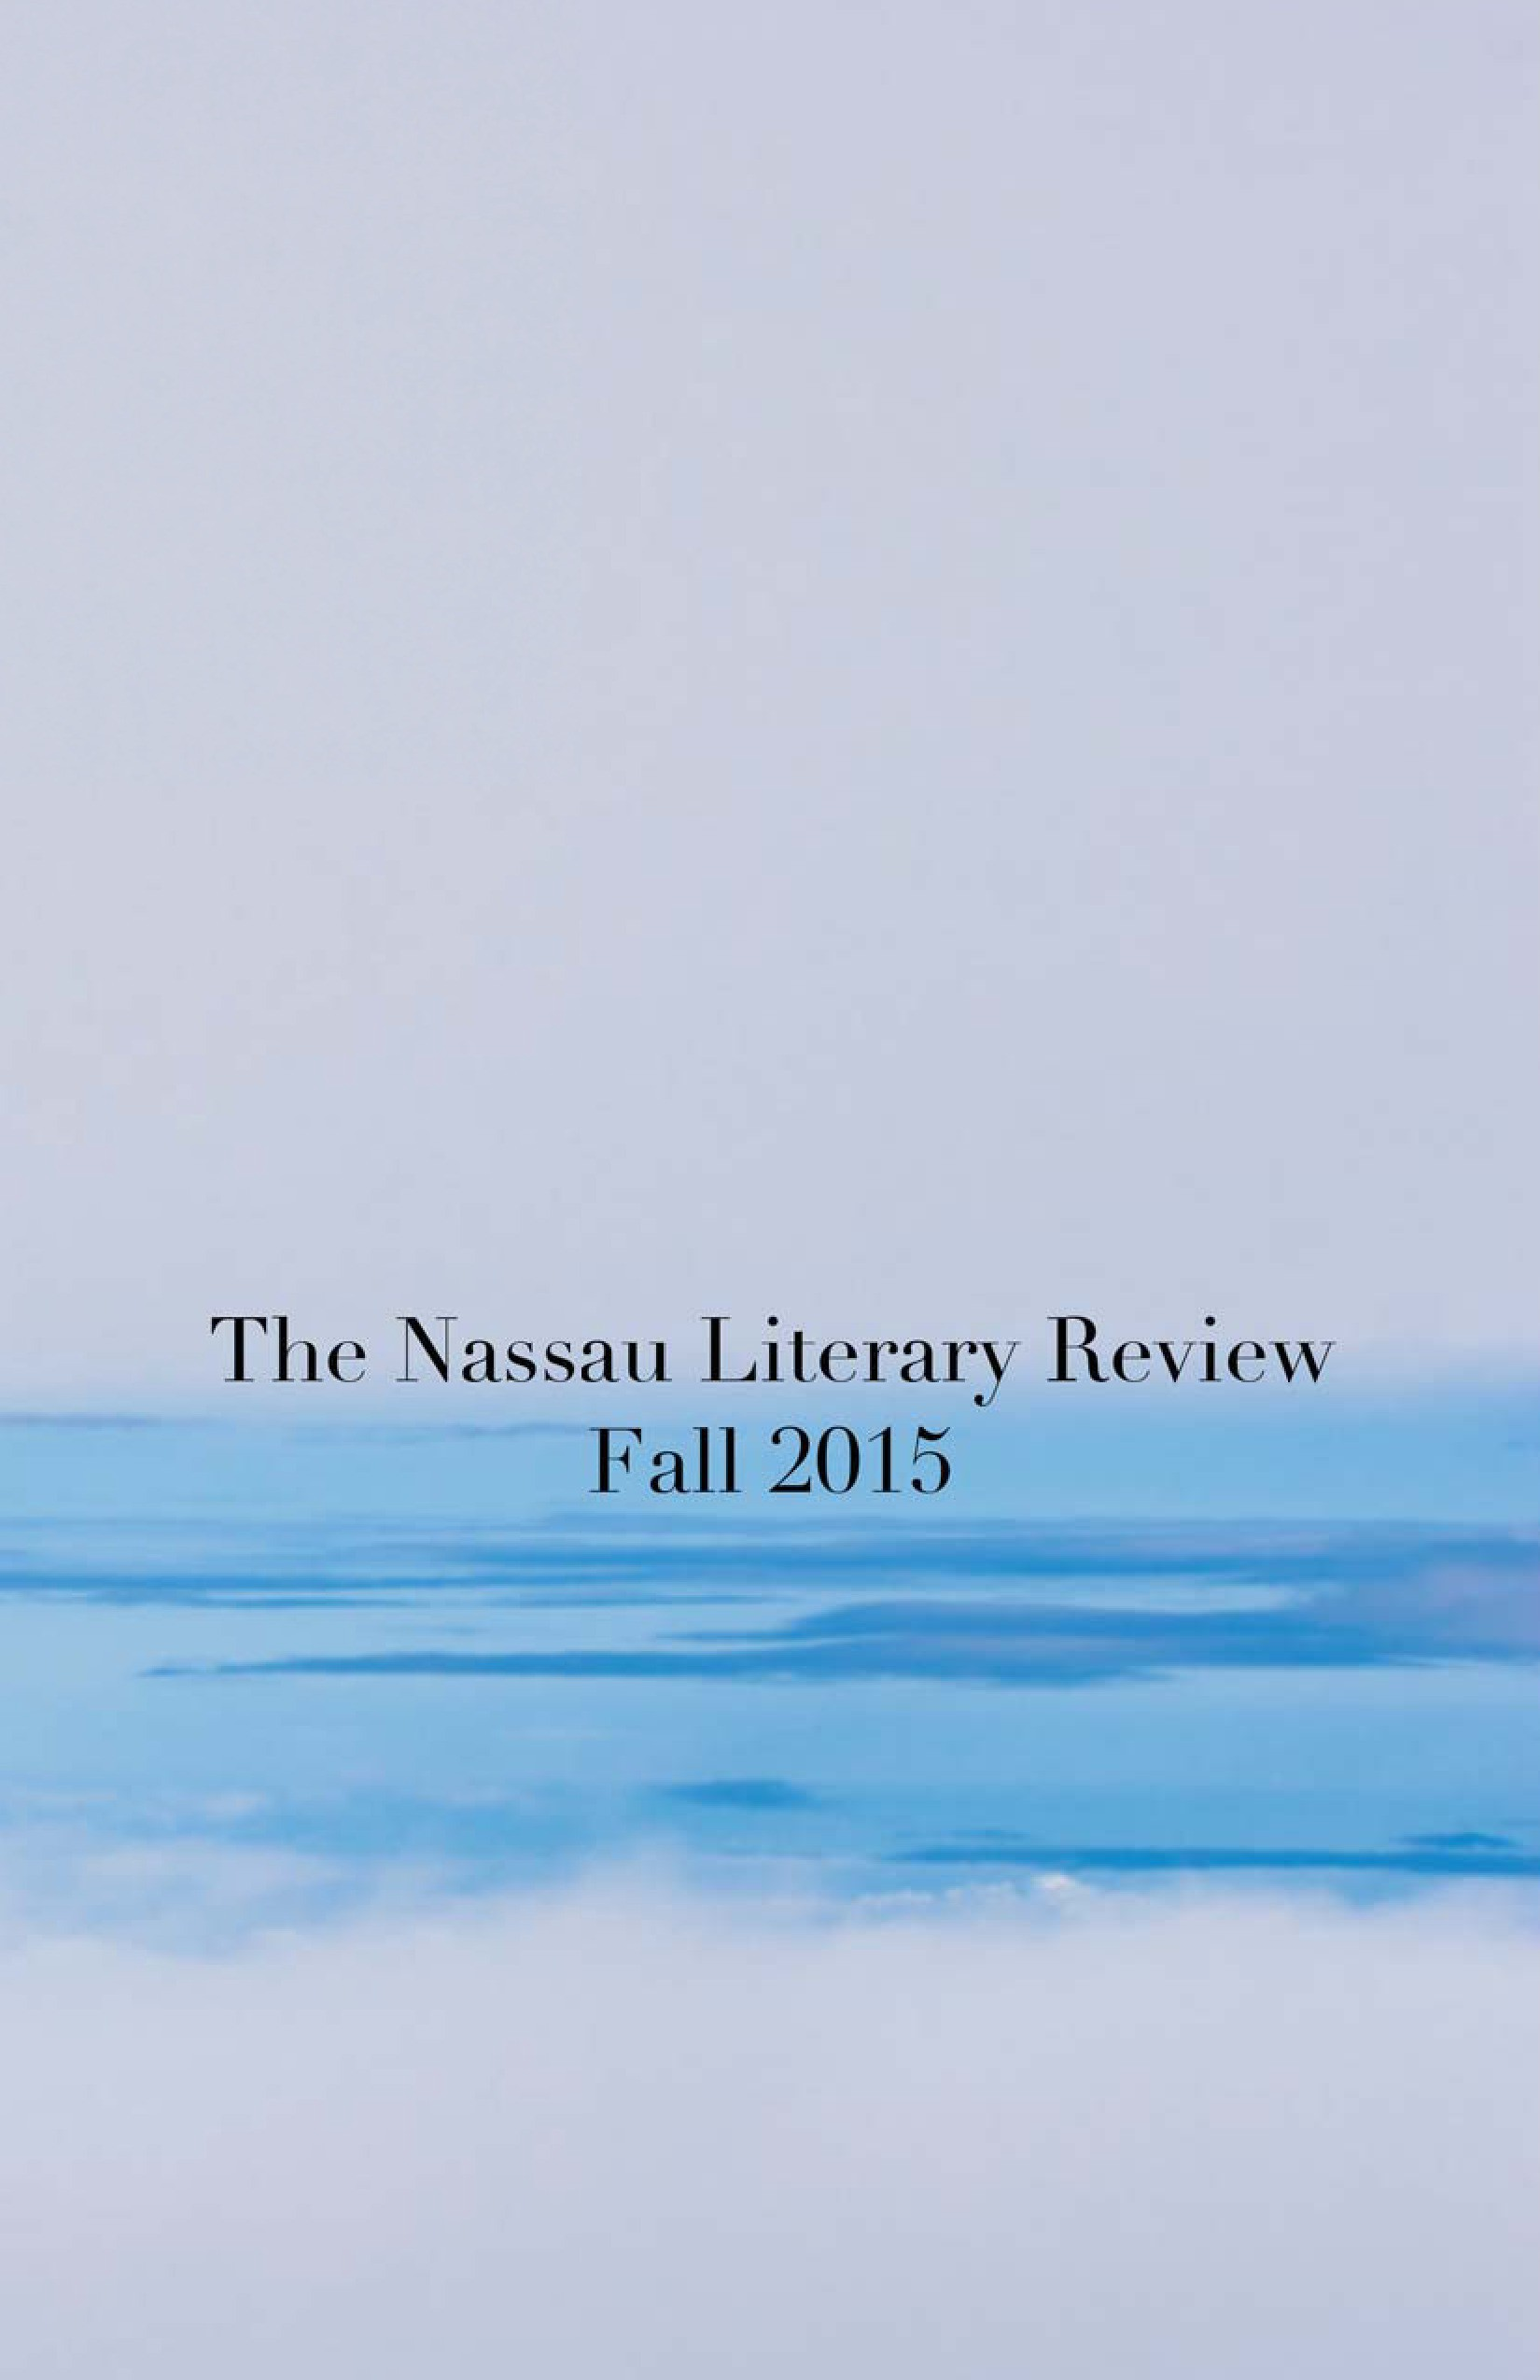 Second Quarter 2015 Bsea Commentary By >> Past Issues The Nassau Literary Review